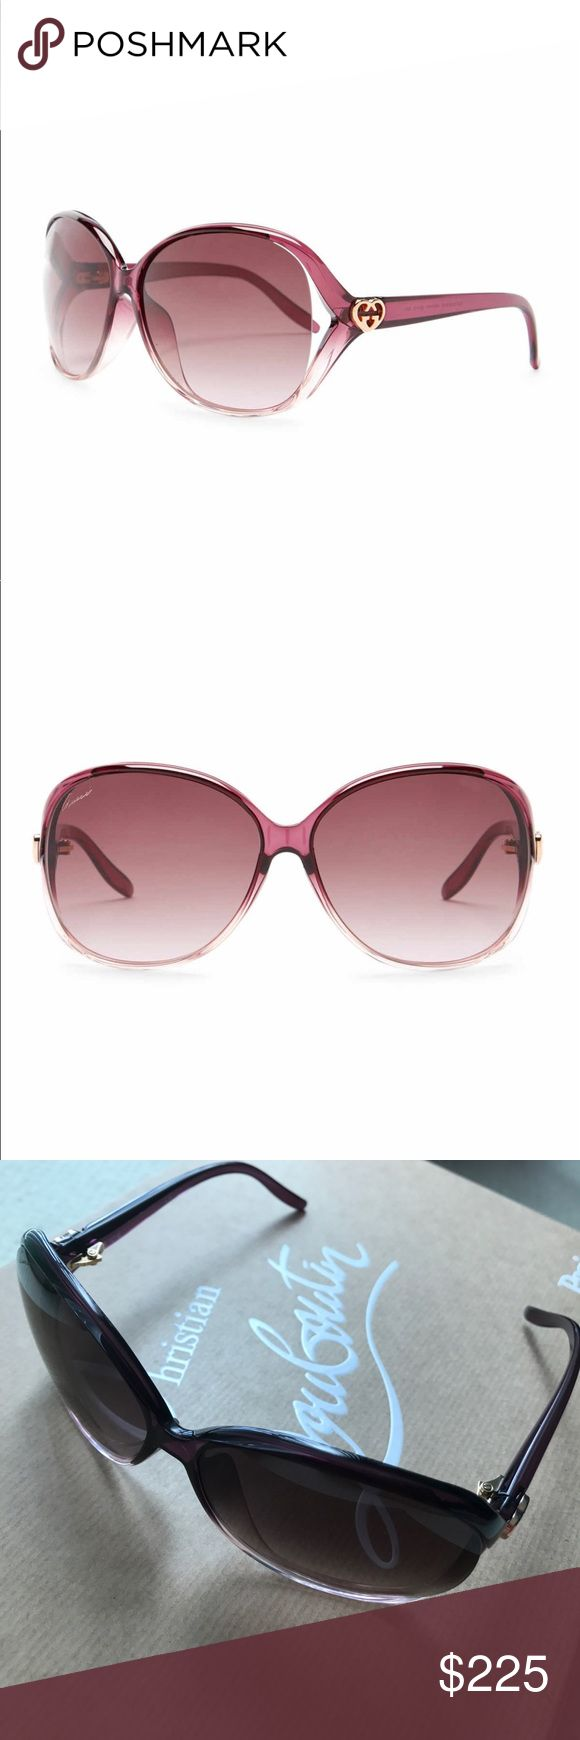 Authentic Brand New GUCCI Sunglasses Brand New Gucci Sunglasses with Authenticity Card. Purchased from Nordstrom. 63-16-140 mm. Retail $390 before tax. So chic and classic! Dark violet! Stunning! Mint condition. Misplaced case but I'll be running to Gucci to ask for a new one. Price is WITHOUT CASE. No trades! Appears a lot DARKER in person than in stock photos. Gucci Accessories Sunglasses